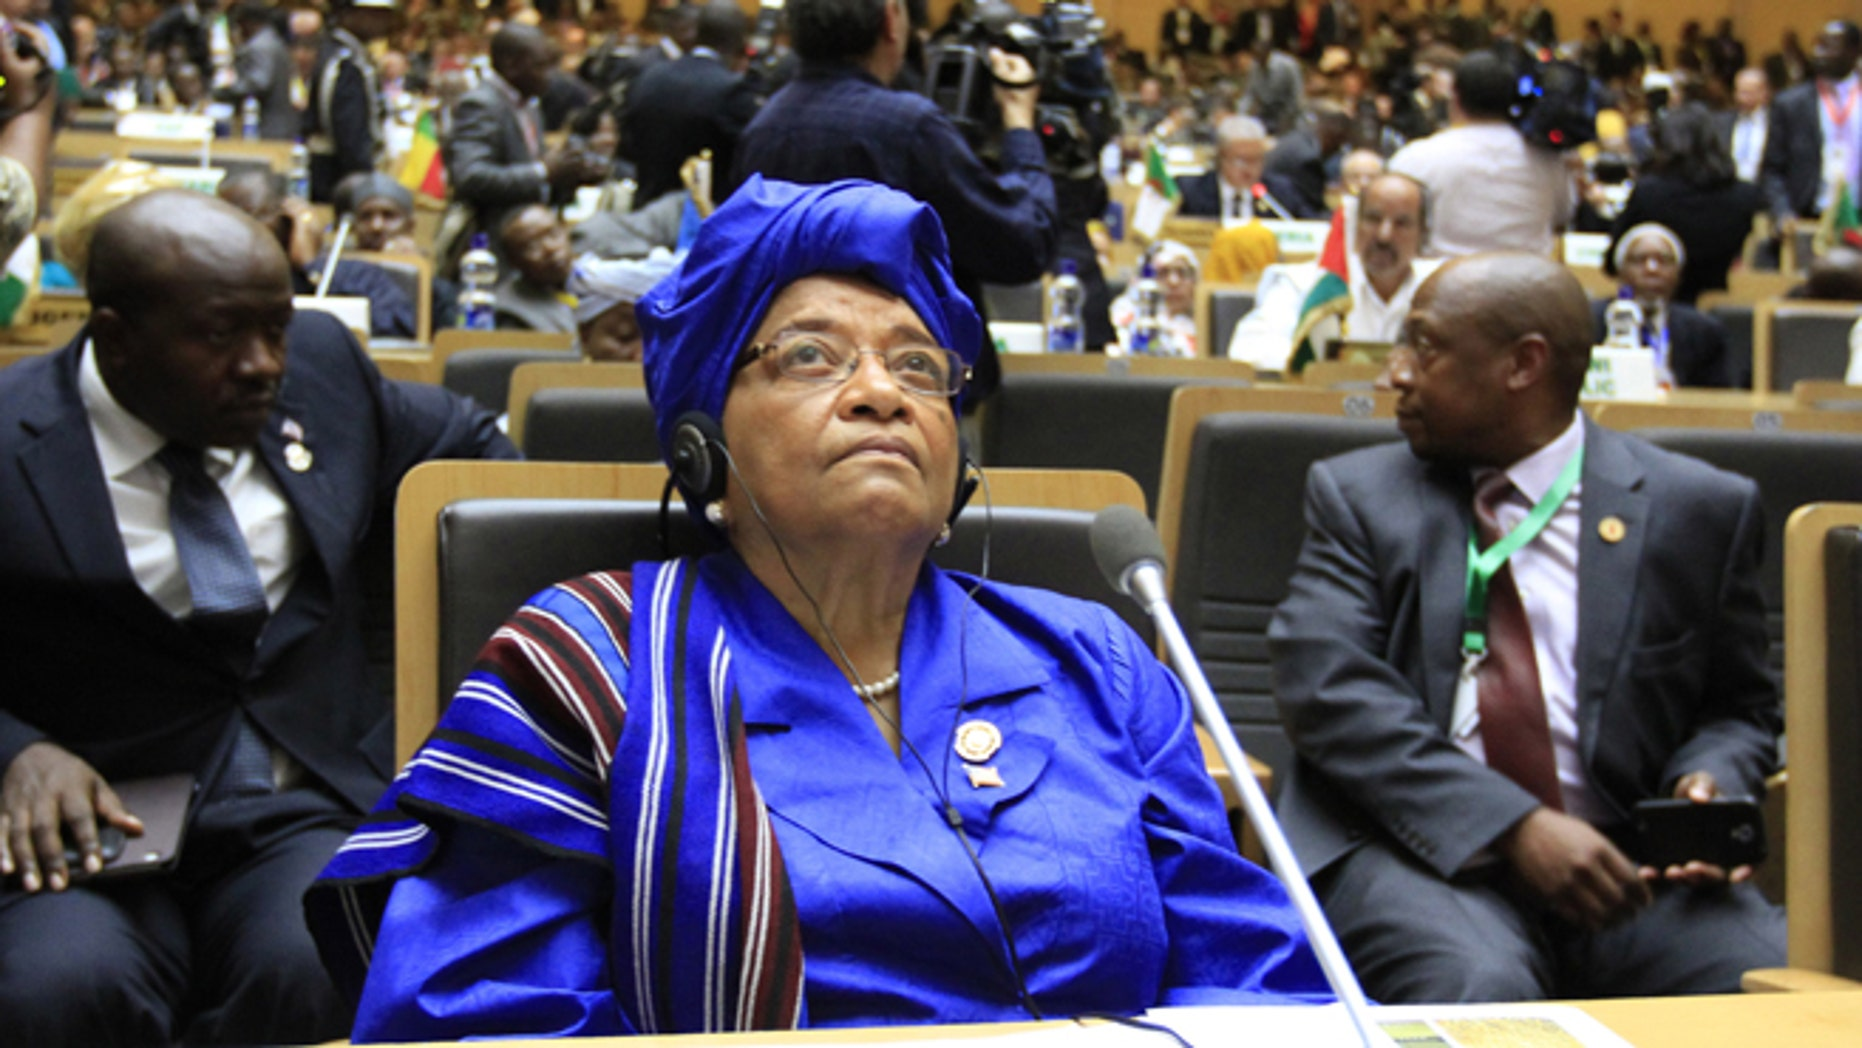 Liberian President Ellen Johnson-Sirleaf attends the opening ceremony of the 22nd Ordinary Session of the African Union summit in Ethiopia's capital Addis Ababa, January 30, 2014. The new president of Madagascar called on Thursday for an international donor conference in the next three months to help his island state recover from a political and economic crisis triggered by a coup five years ago. President Hery Rajaonarimampianina, who was sworn into office this month after elections passed off calmly in December, made his appeal at an African Union summit in Addis Ababa. REUTERS/Tiksa Negeri (ETHIOPIA - Tags: POLITICS) - RTX180W8